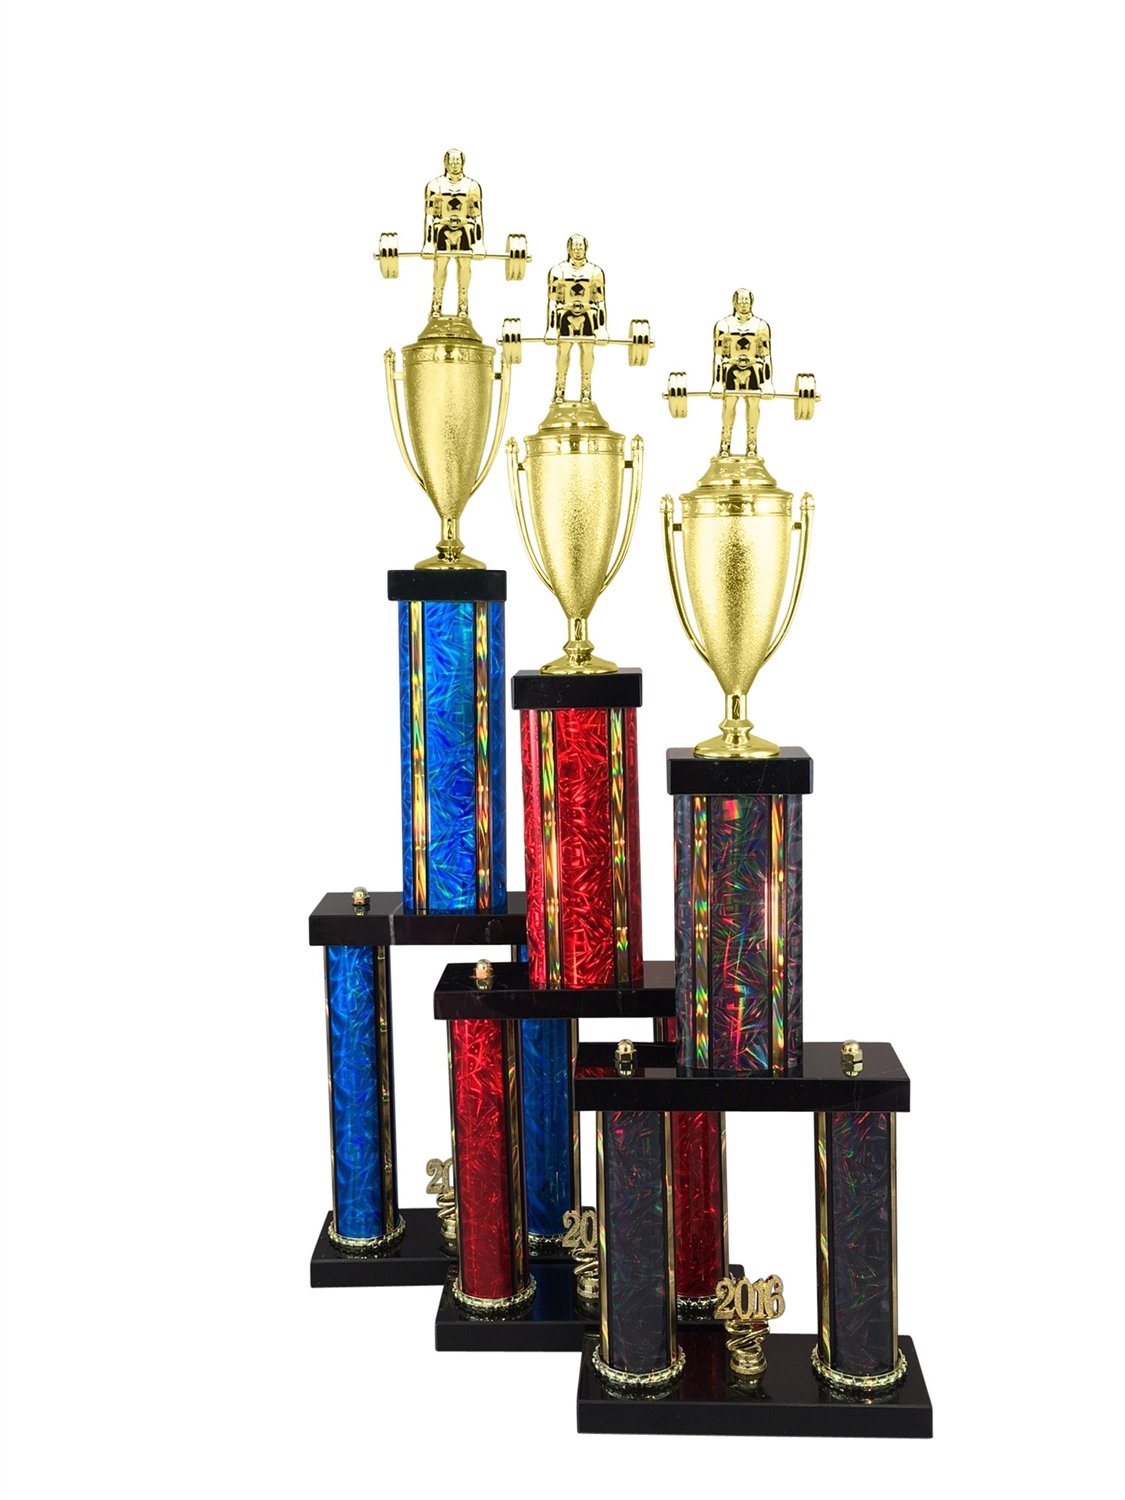 2 Column Deadlift Weightlifter Trophy in 11 Color & 6 Size Options